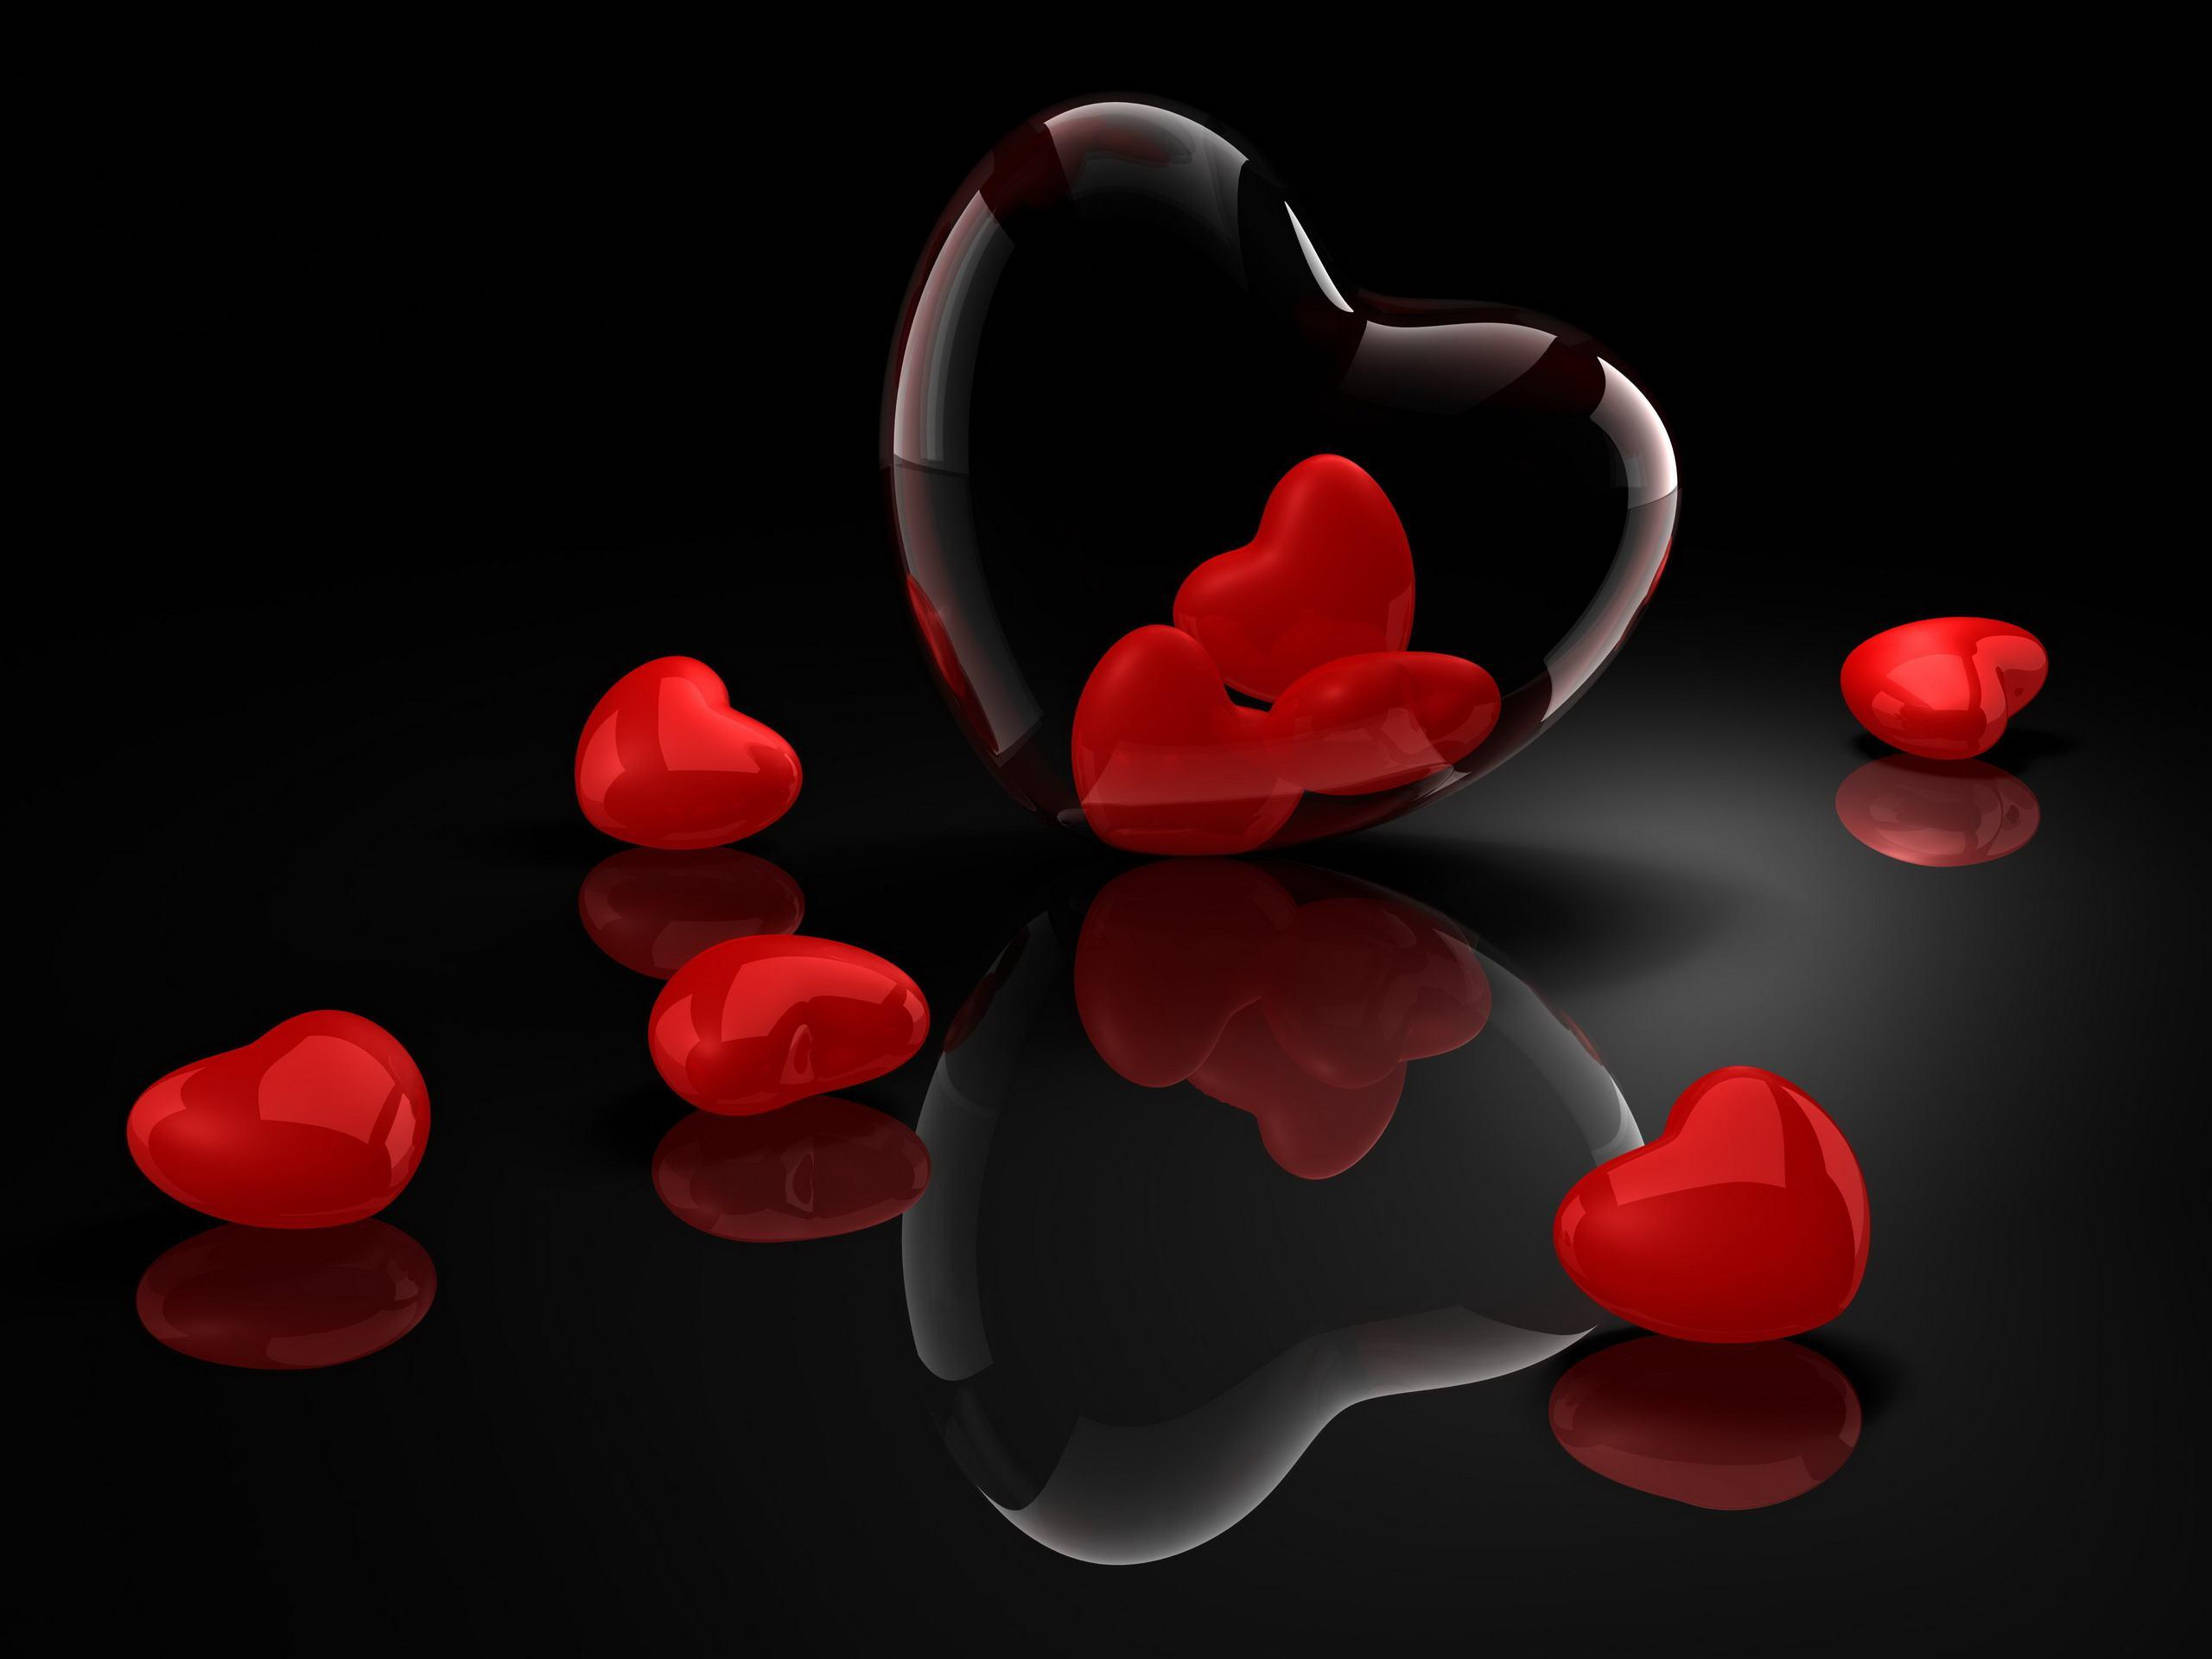 Love Wallpaper 3d Image : Heart Black Backgrounds - Wallpaper cave